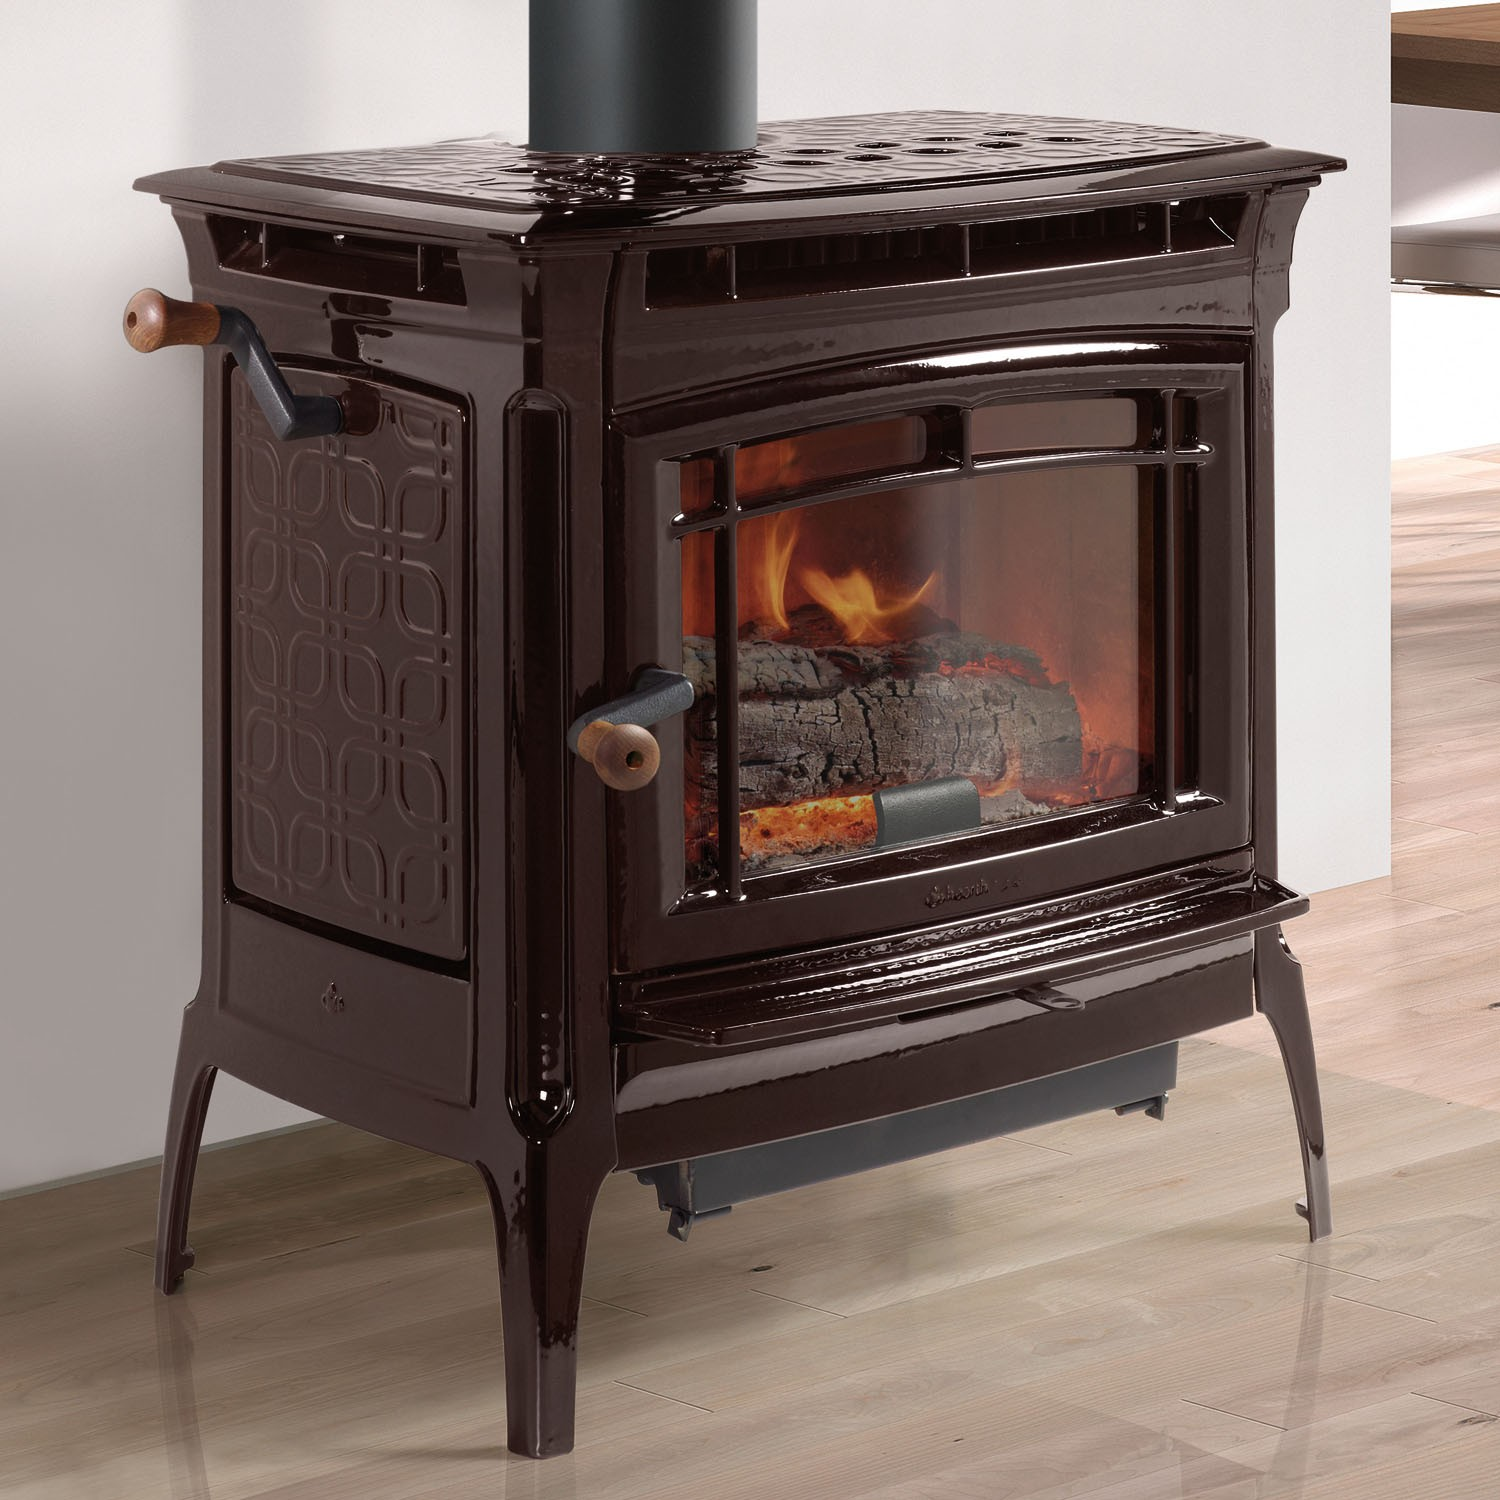 Hearthstone Manchester wood stove; shown in Majolica Brown enamel finish.  The Manchester is  part of the cast-iron line from Hearthstone. It is impressively powerful and has an inner soapstone lining for greater heatlife. It also features a double top as part of its convection system.